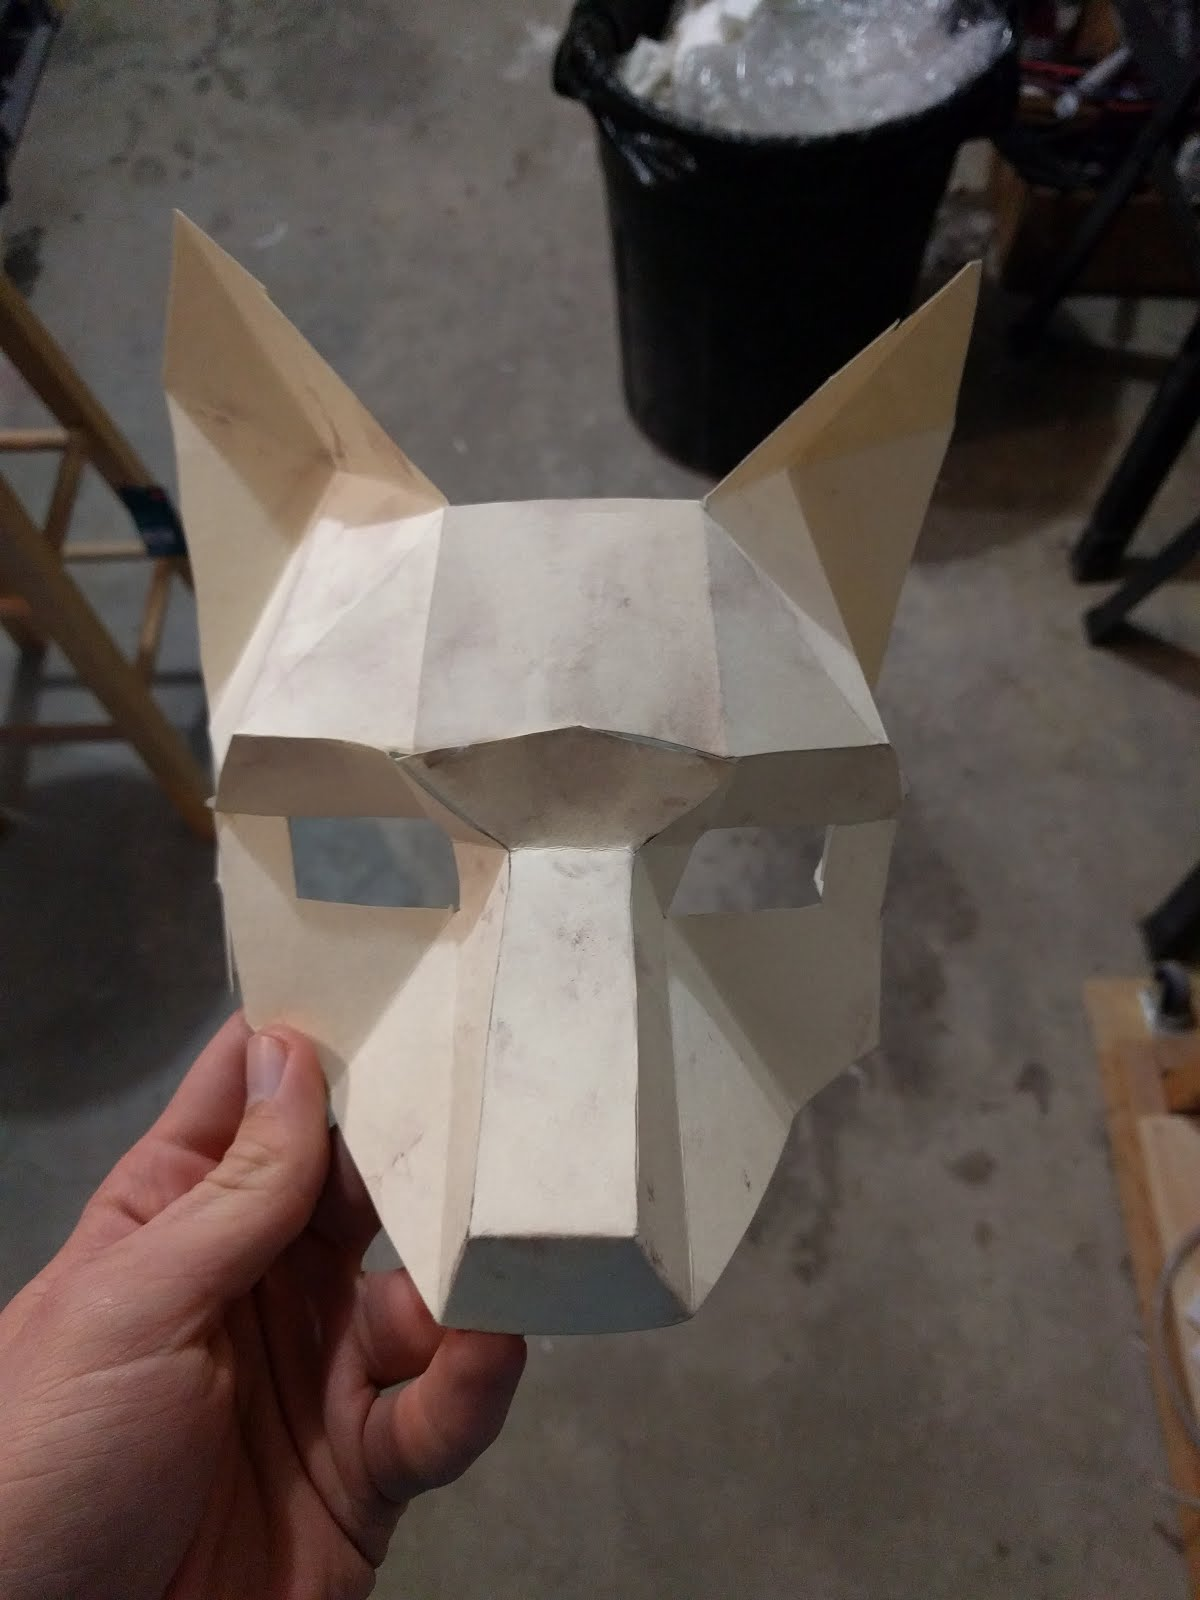 The Basis For Mask Was Wintercrofts Fox Half Is Perfect Masquerade Use And I Thought Papercraft Low Poly Look Would